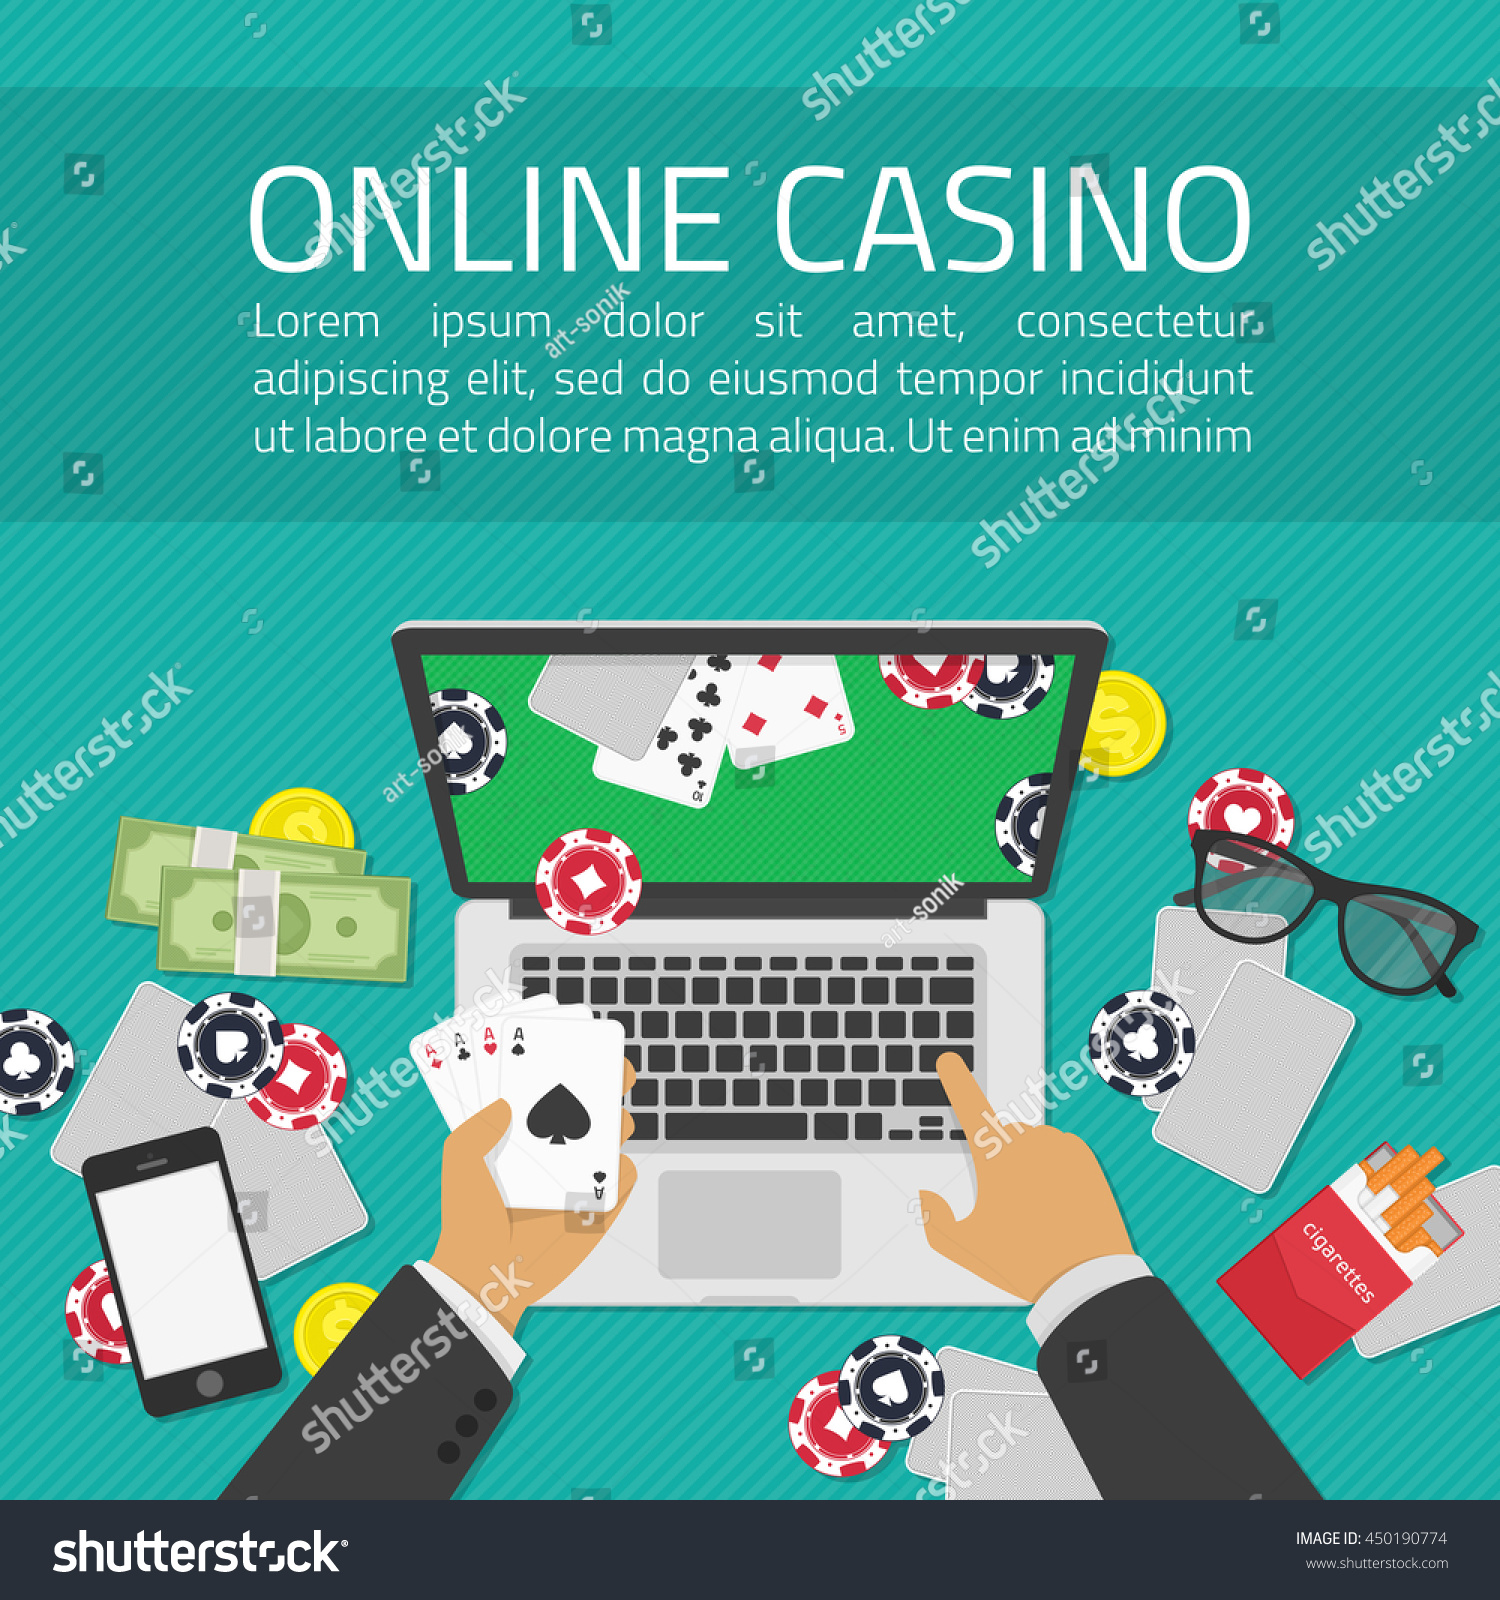 Casino online poker desktop icons indepth casino review list